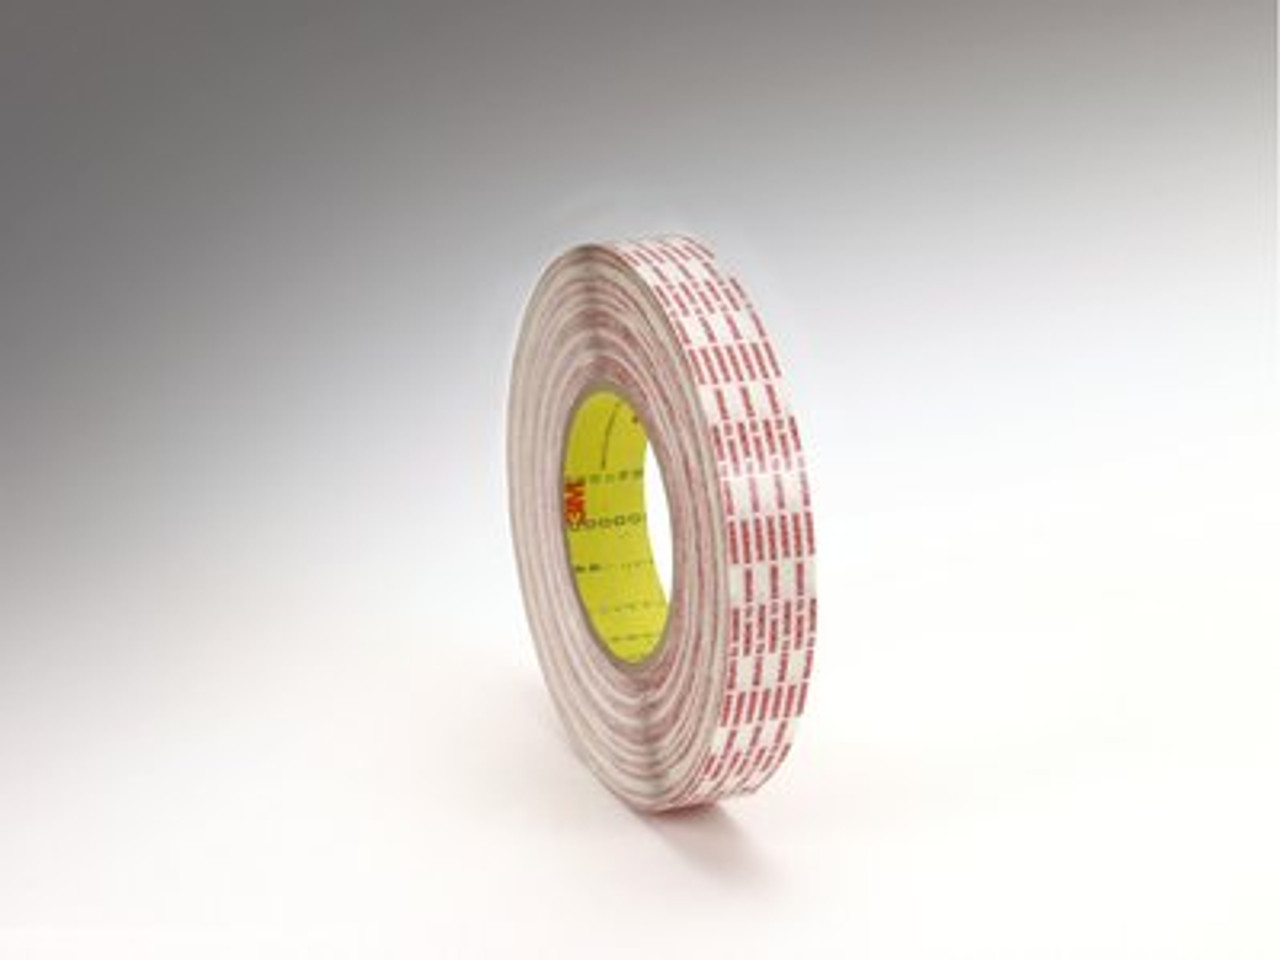 3M™ Double Coated Tape Extended Liner 476XL Translucent, 2 in x 60 yd 6.0 mil